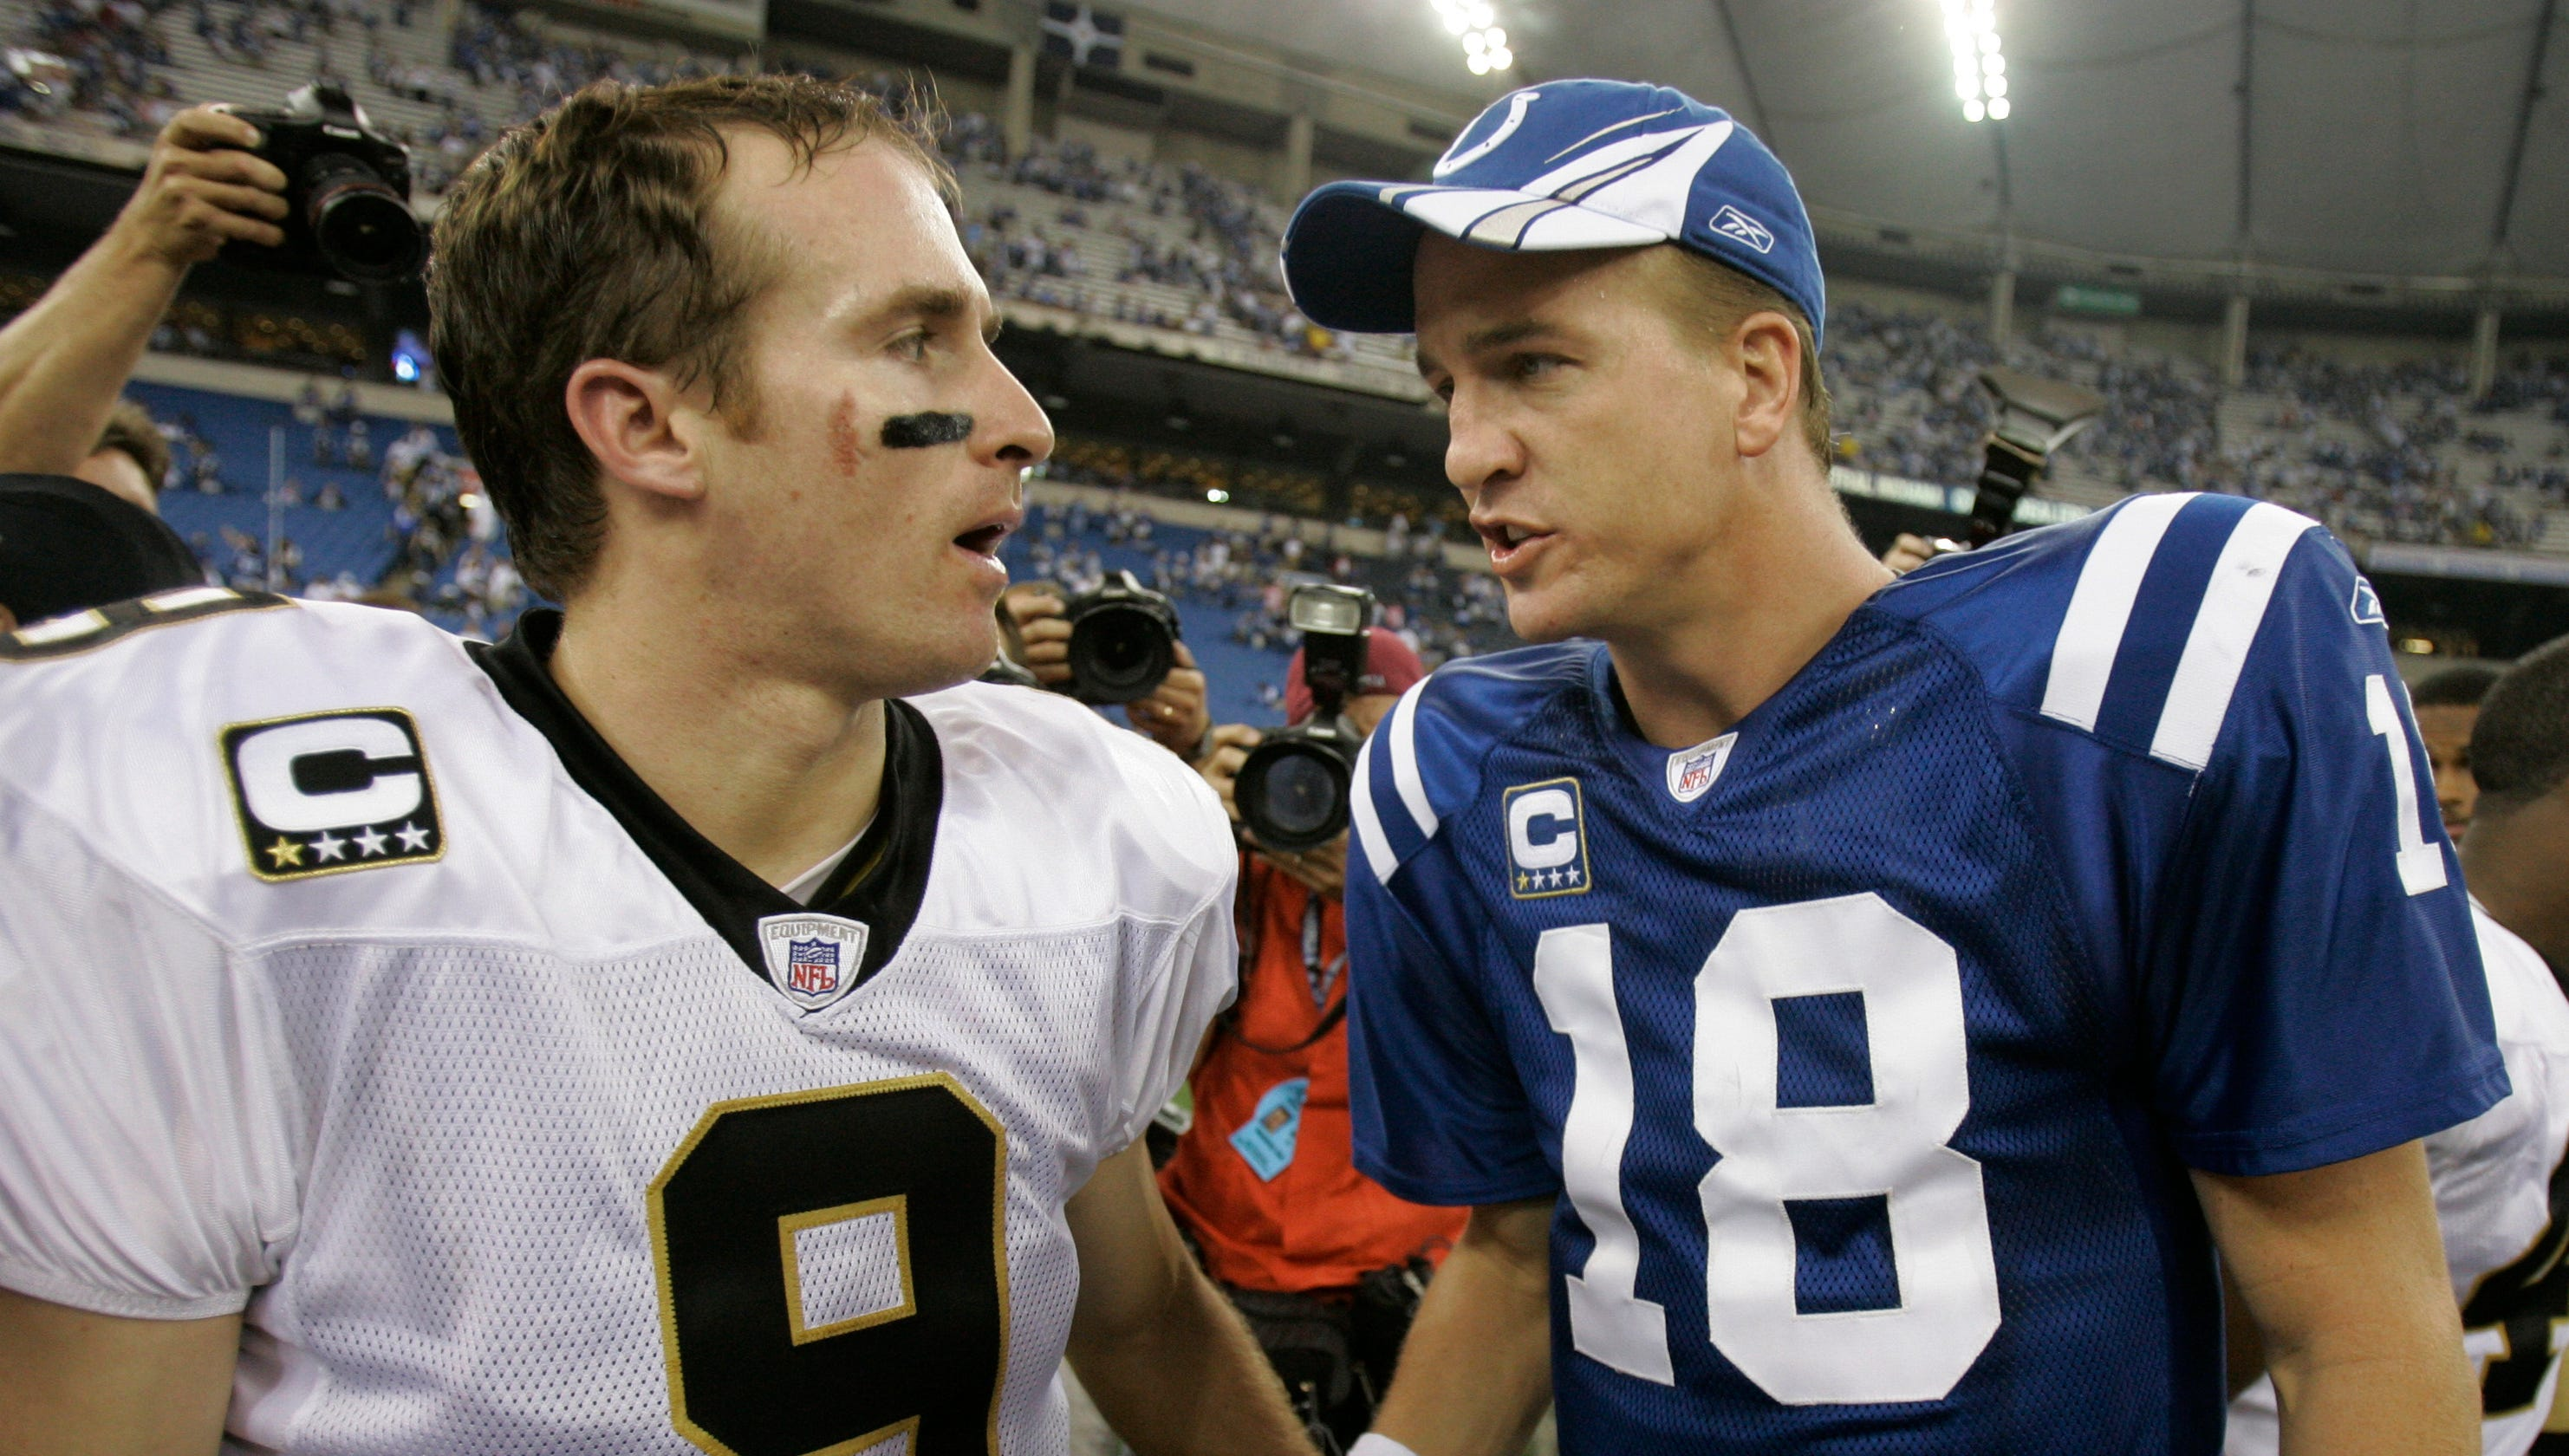 Peyton Manning congratulates Drew Brees for passing yards record in hilarious video